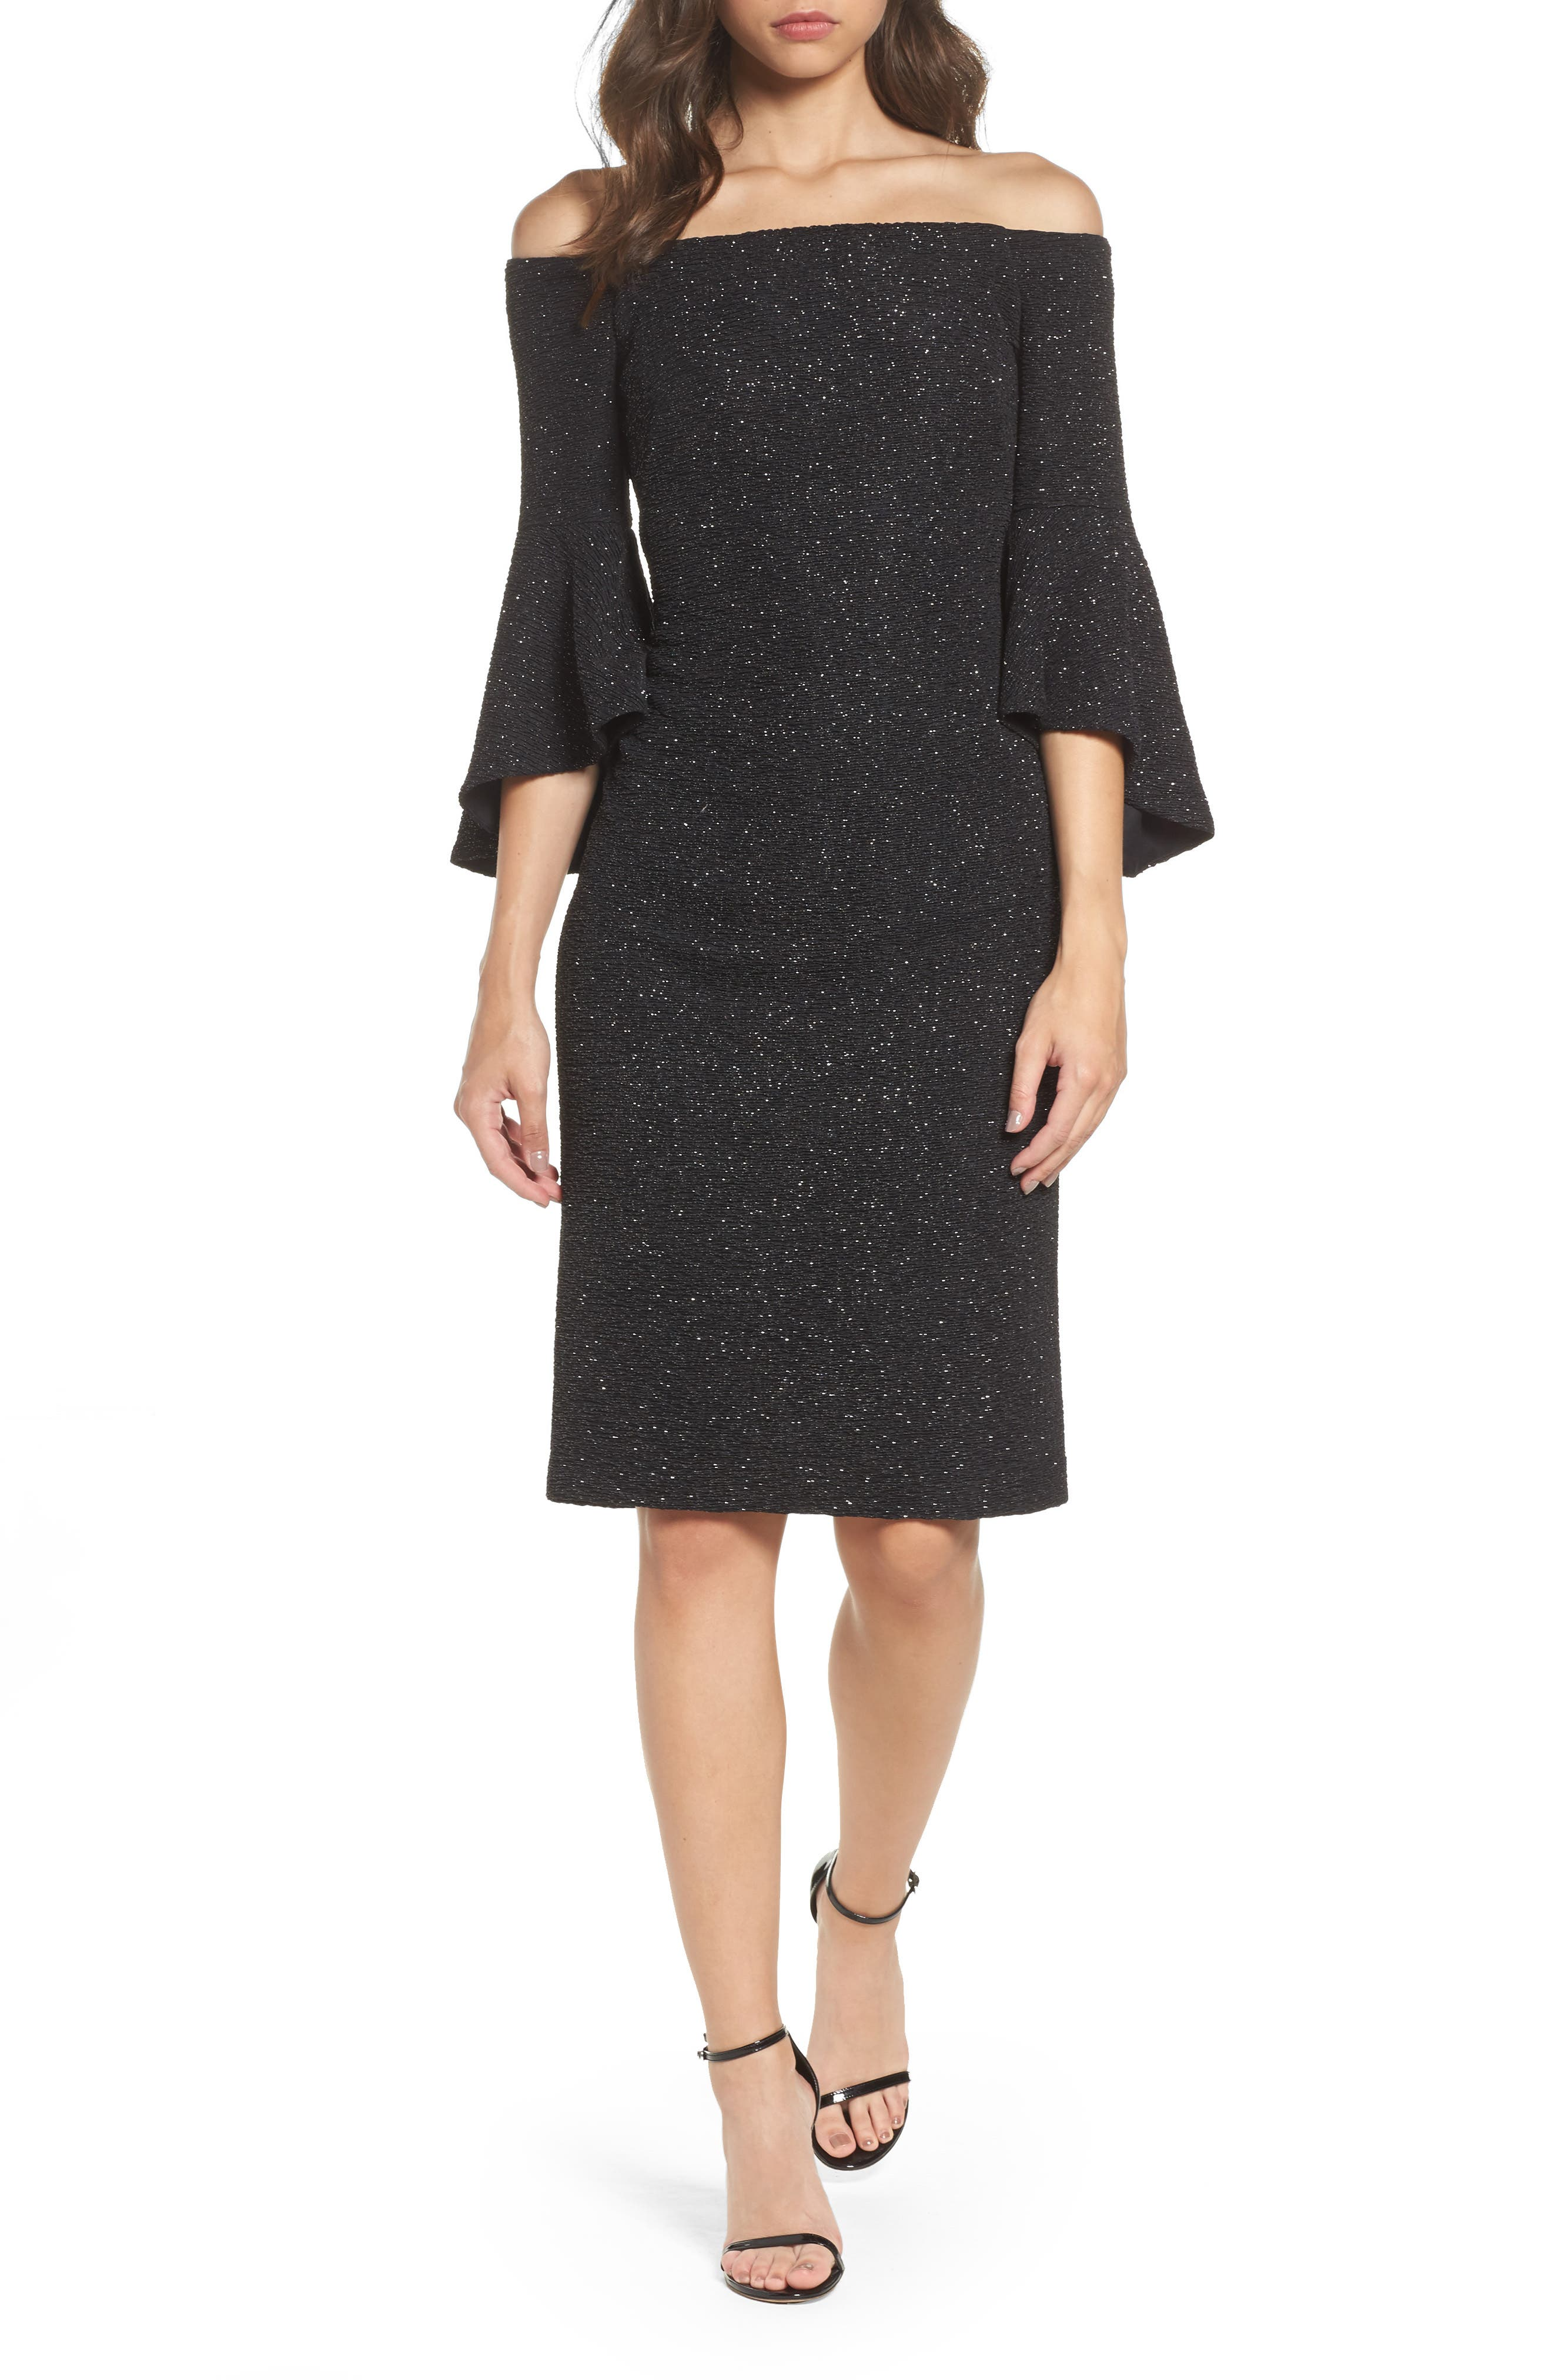 Alternate Image 1 Selected - Eliza J Off the Shoulder Bell Sleeve Sheath Dress